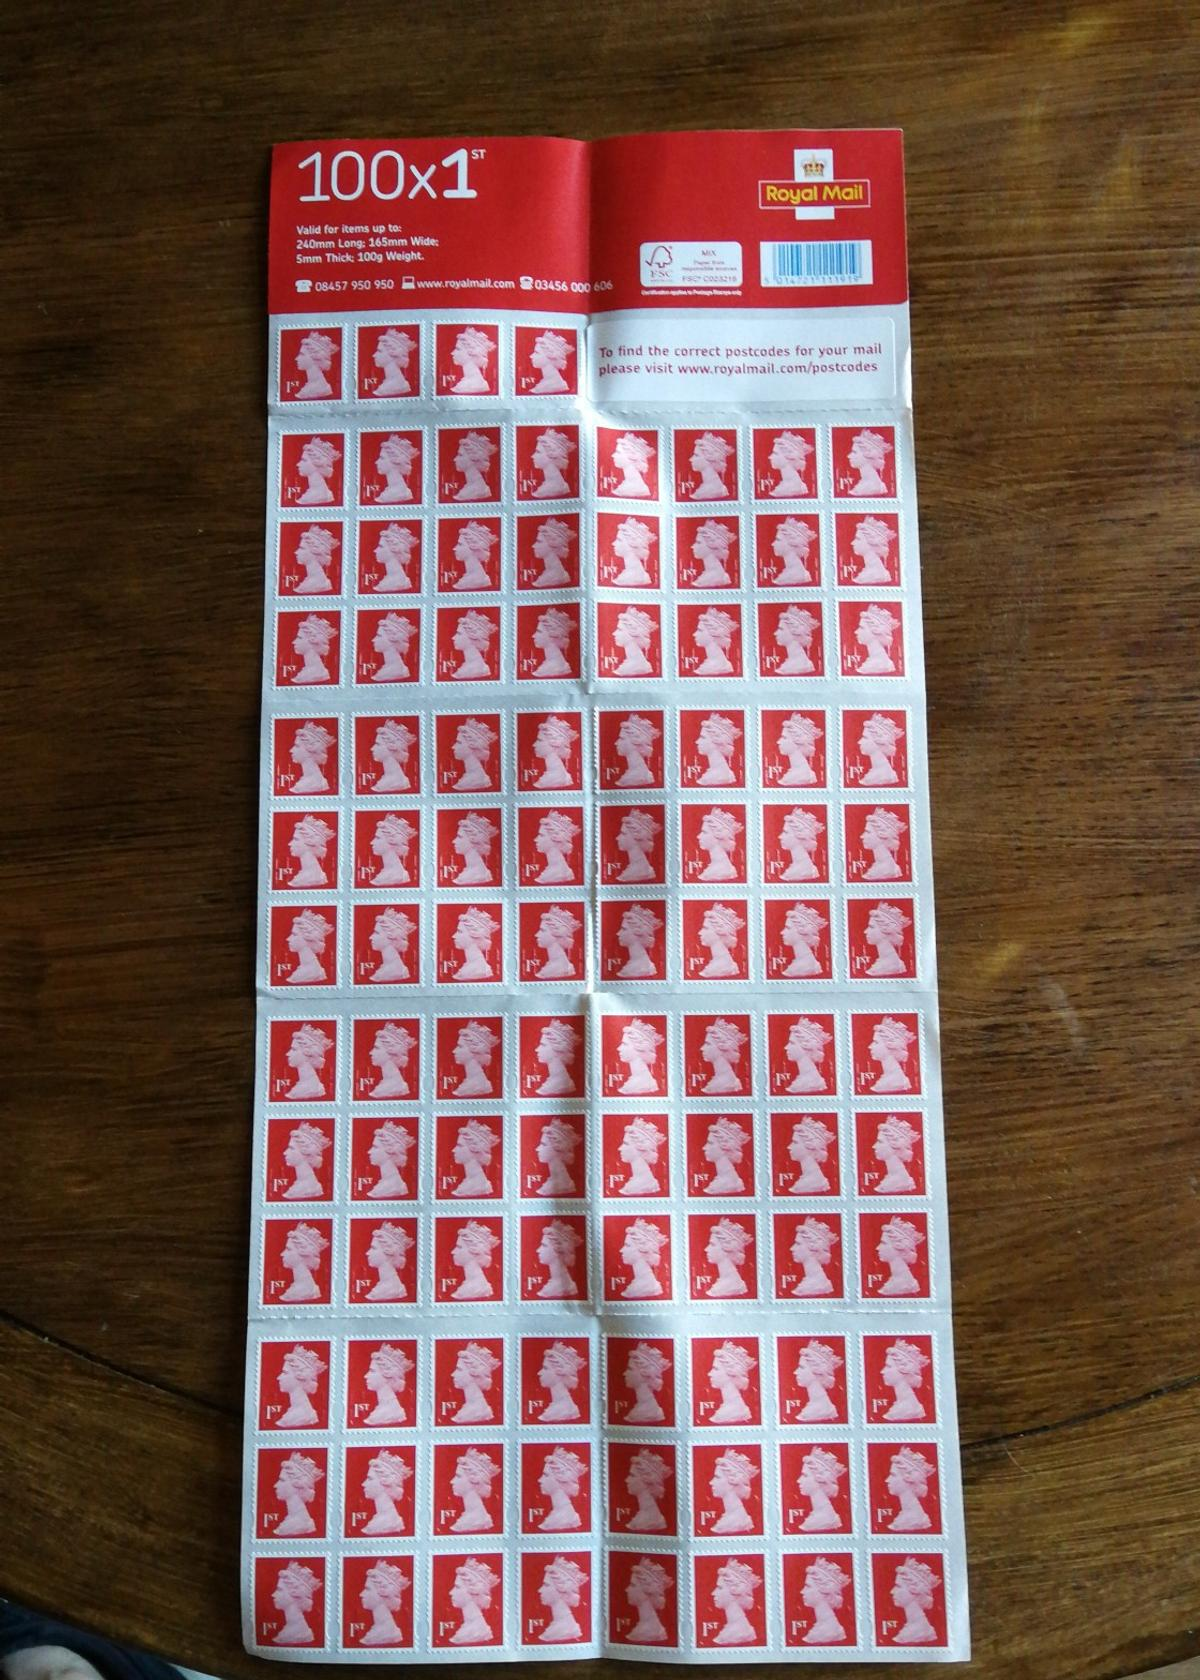 1st Class Stamps x 100 (Self Adhesive Stamp